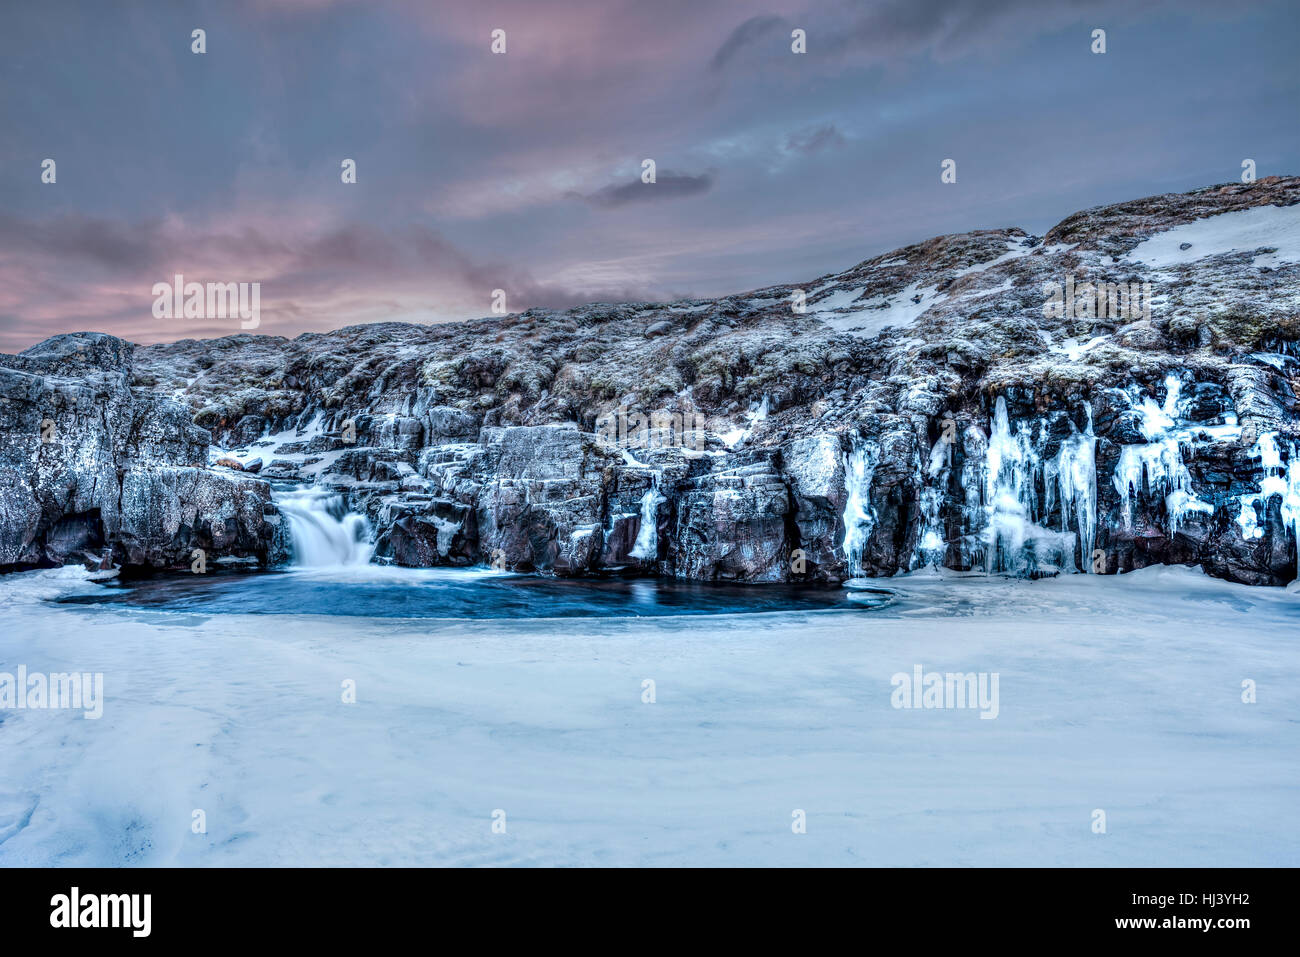 A frozen river in the highlands of Iceland framed by dark pastel skies and rugged terrain offers scenic landscape - Stock Image